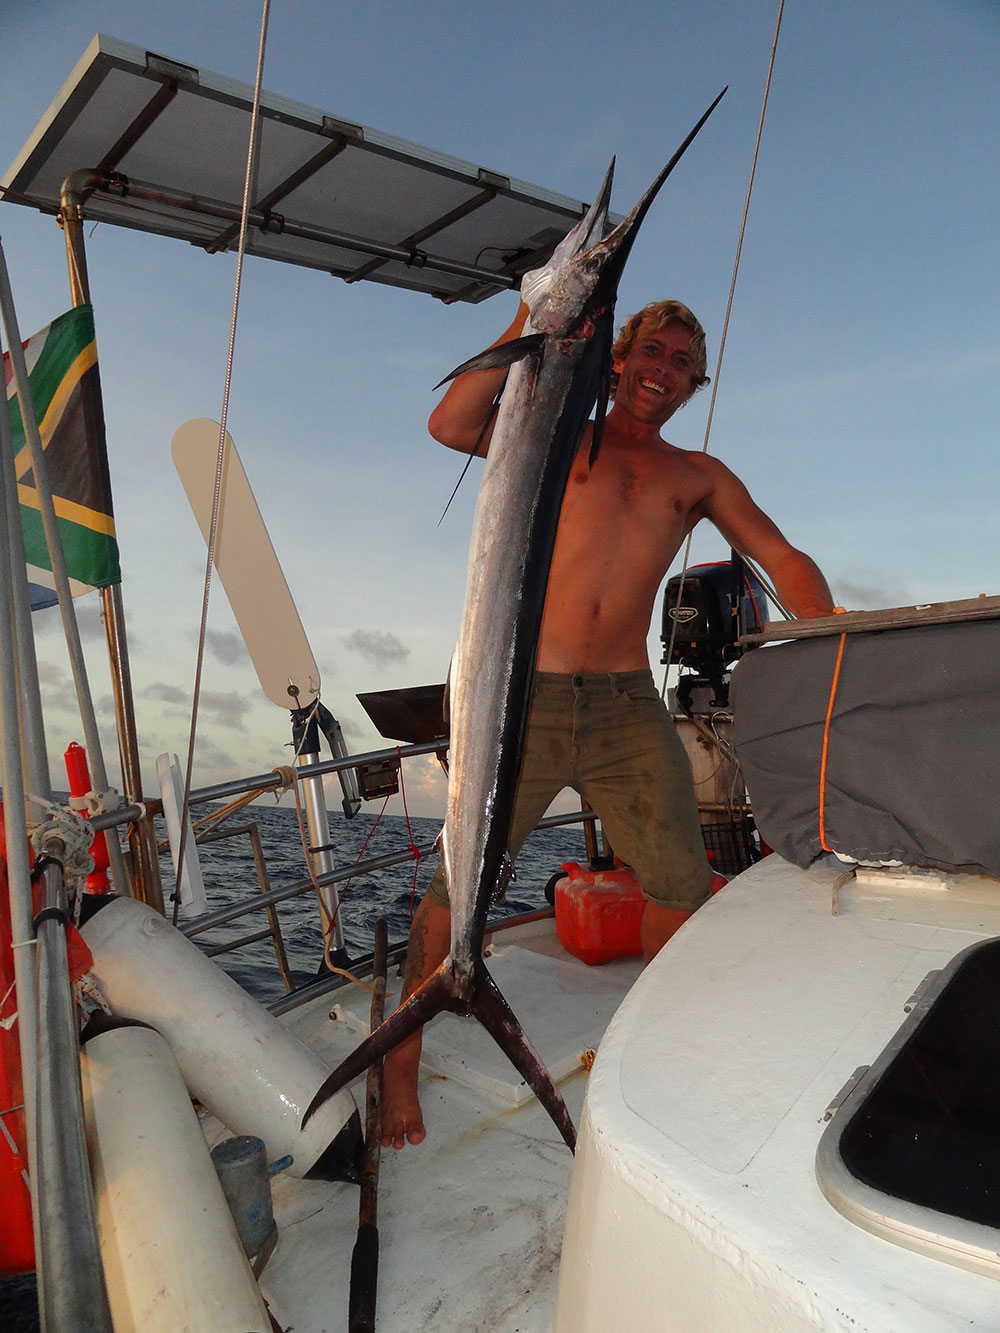 And Will caught a Marlin! (A white one we were told?) Our biggest fish on our last sail!